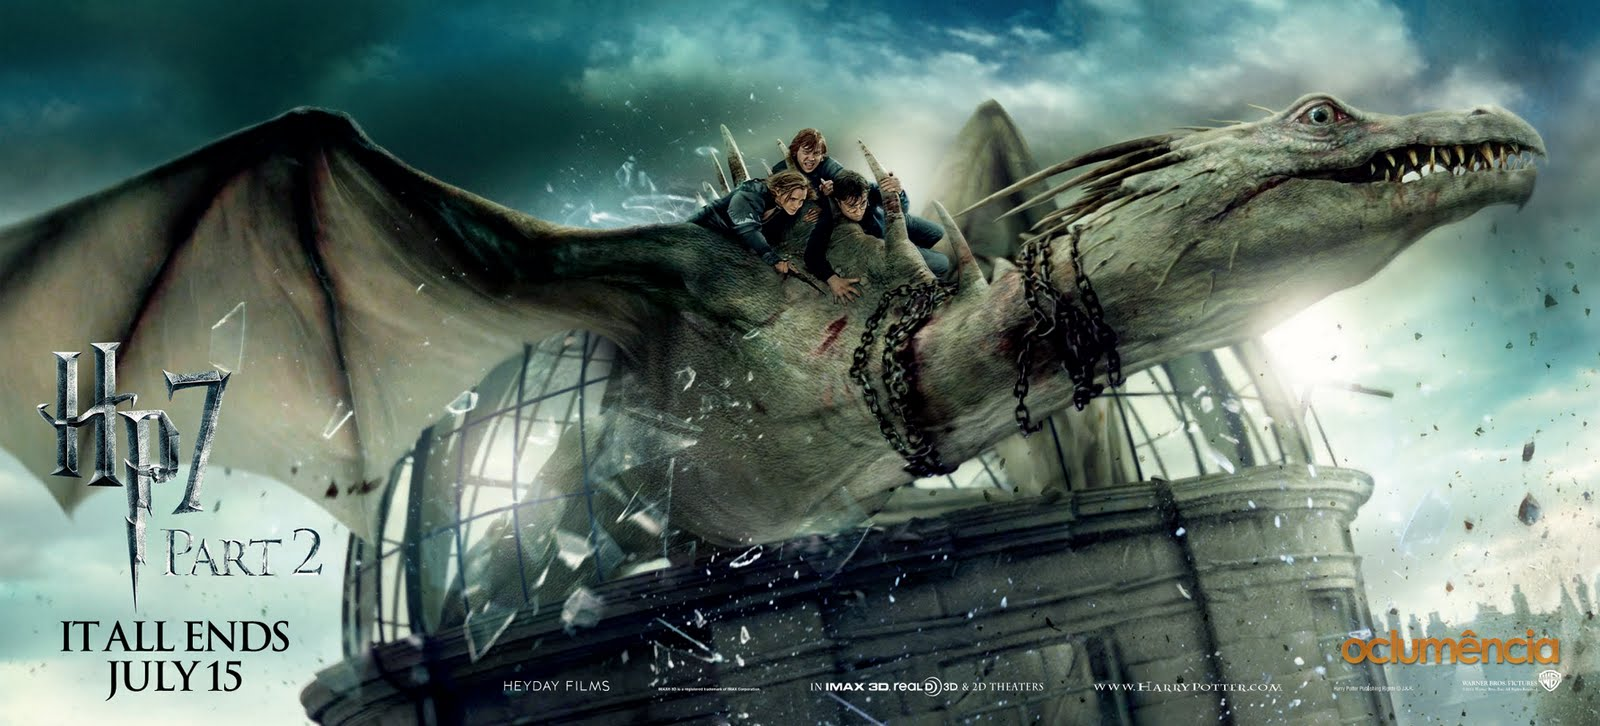 FAMOUS DRAGONS IN FILMSDragon Harry Potter Norbert